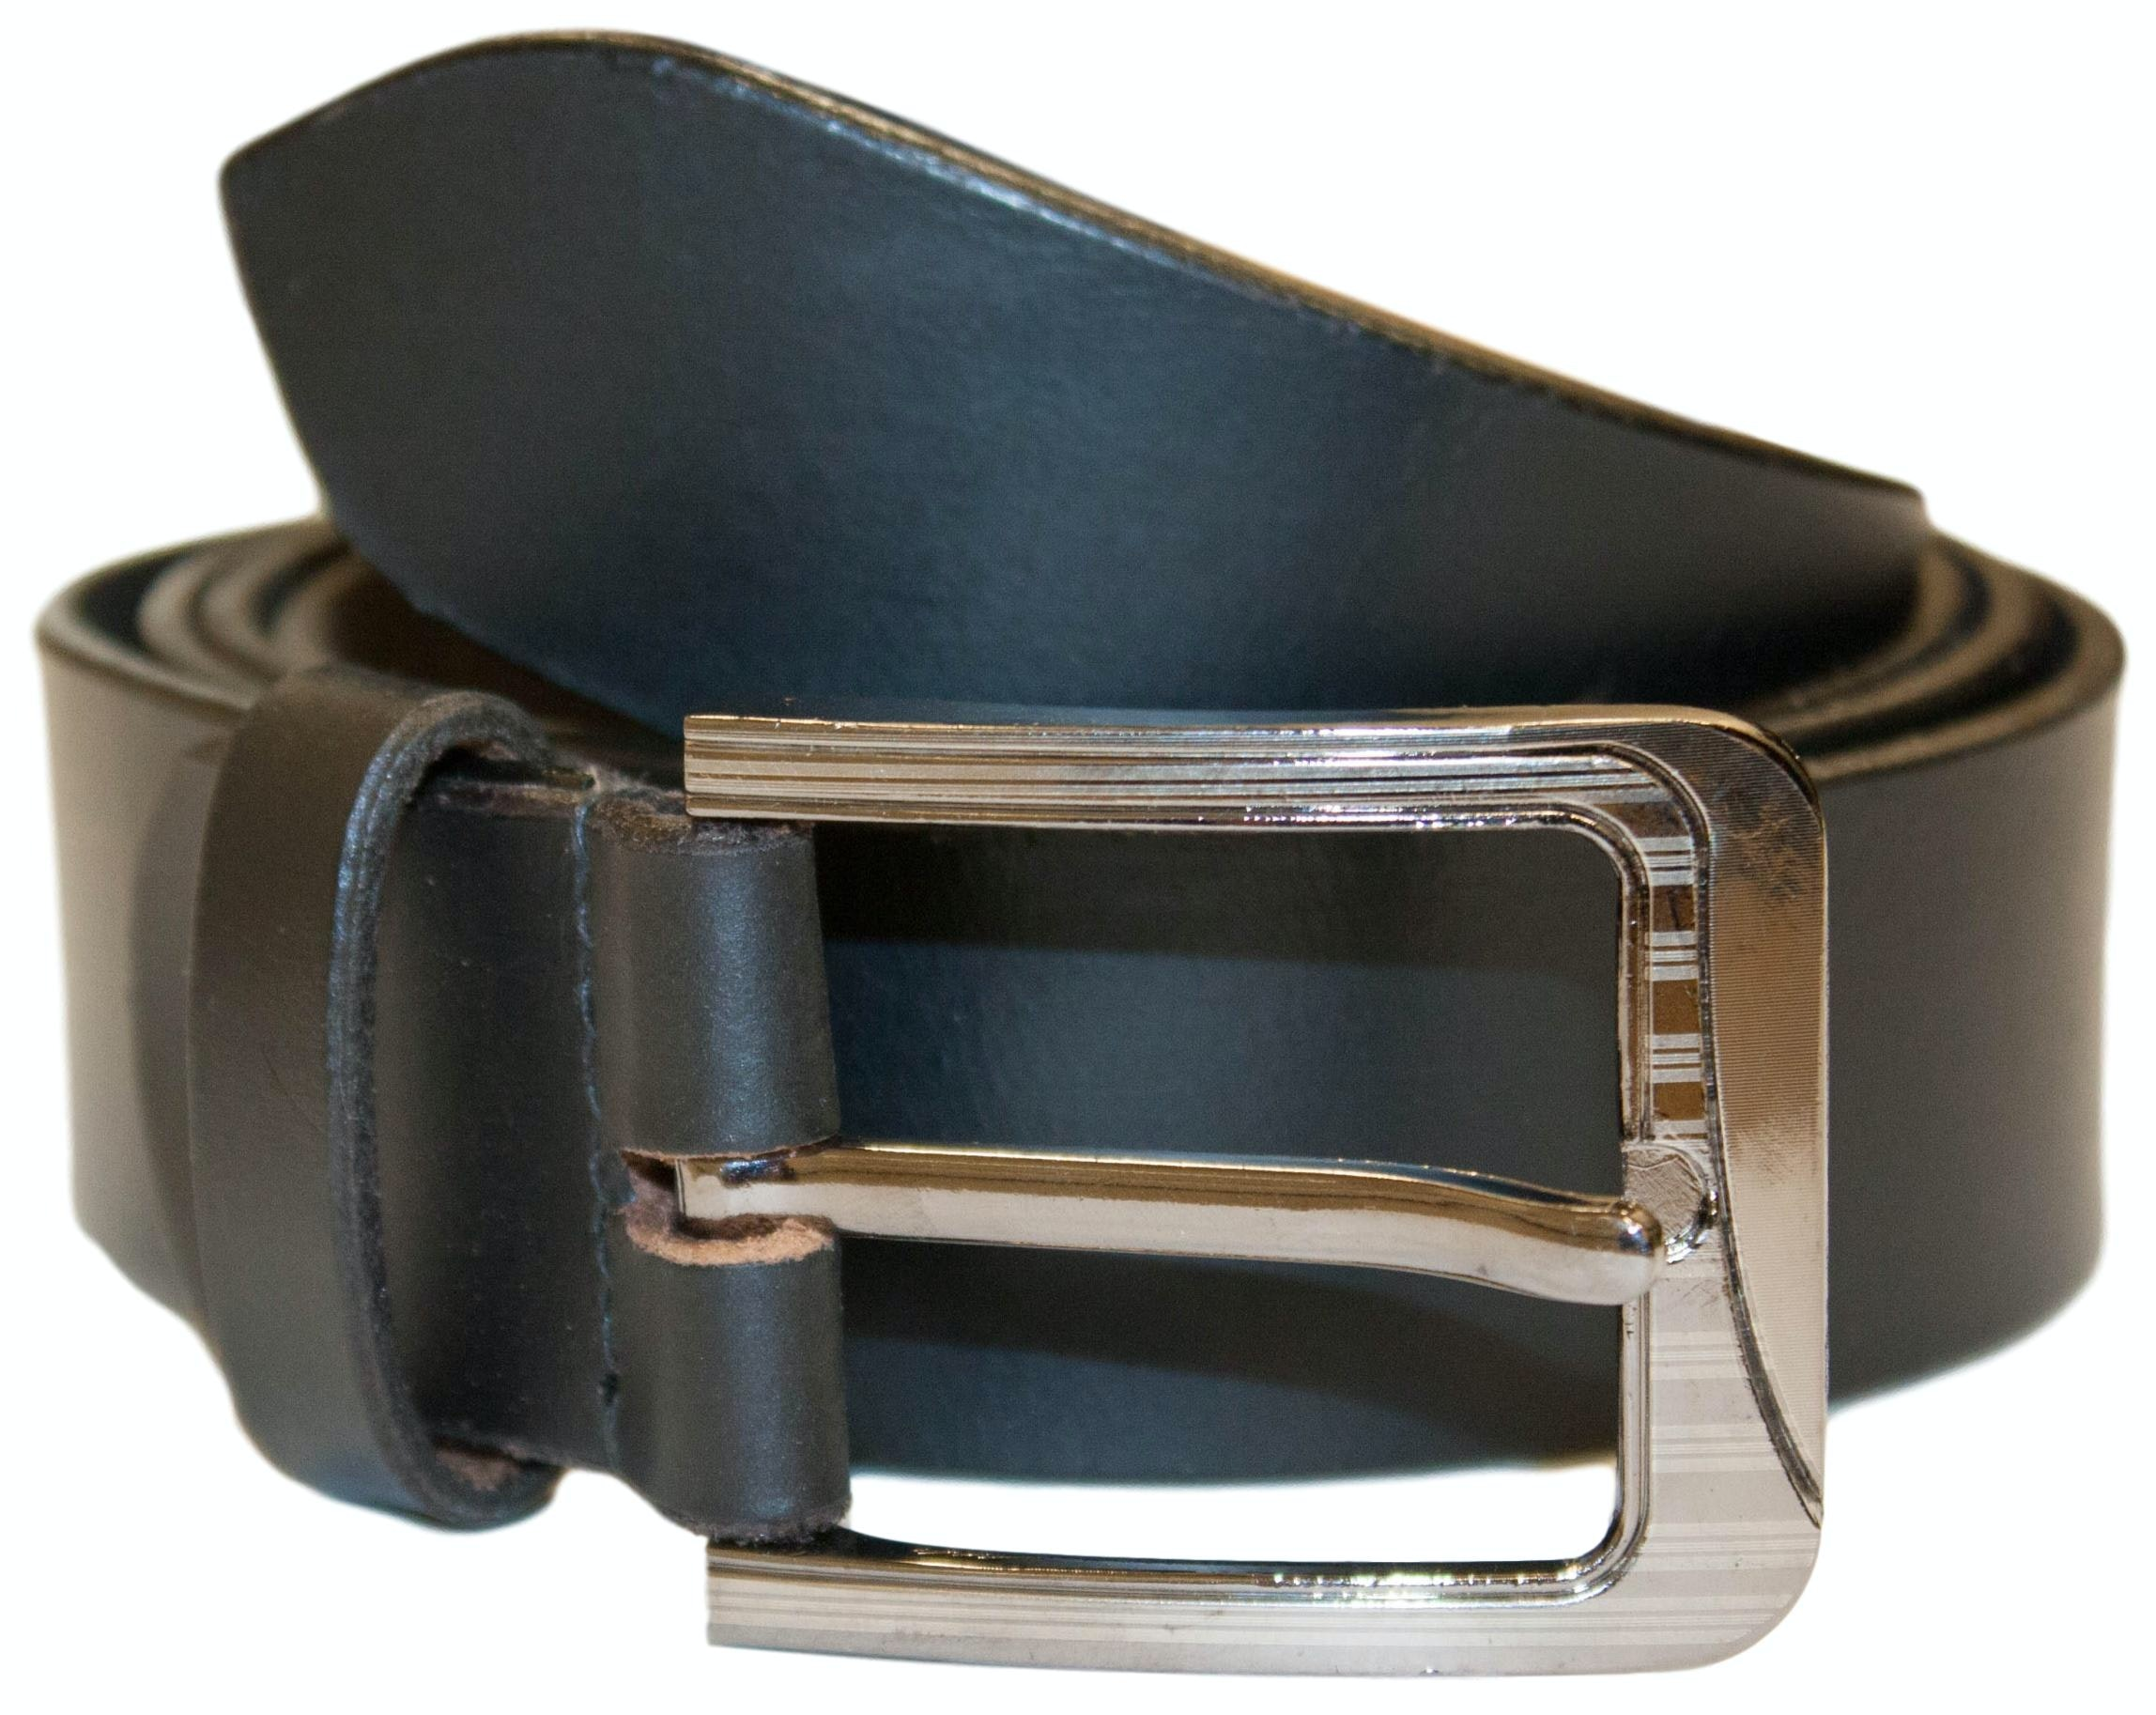 David Leather Belt Black